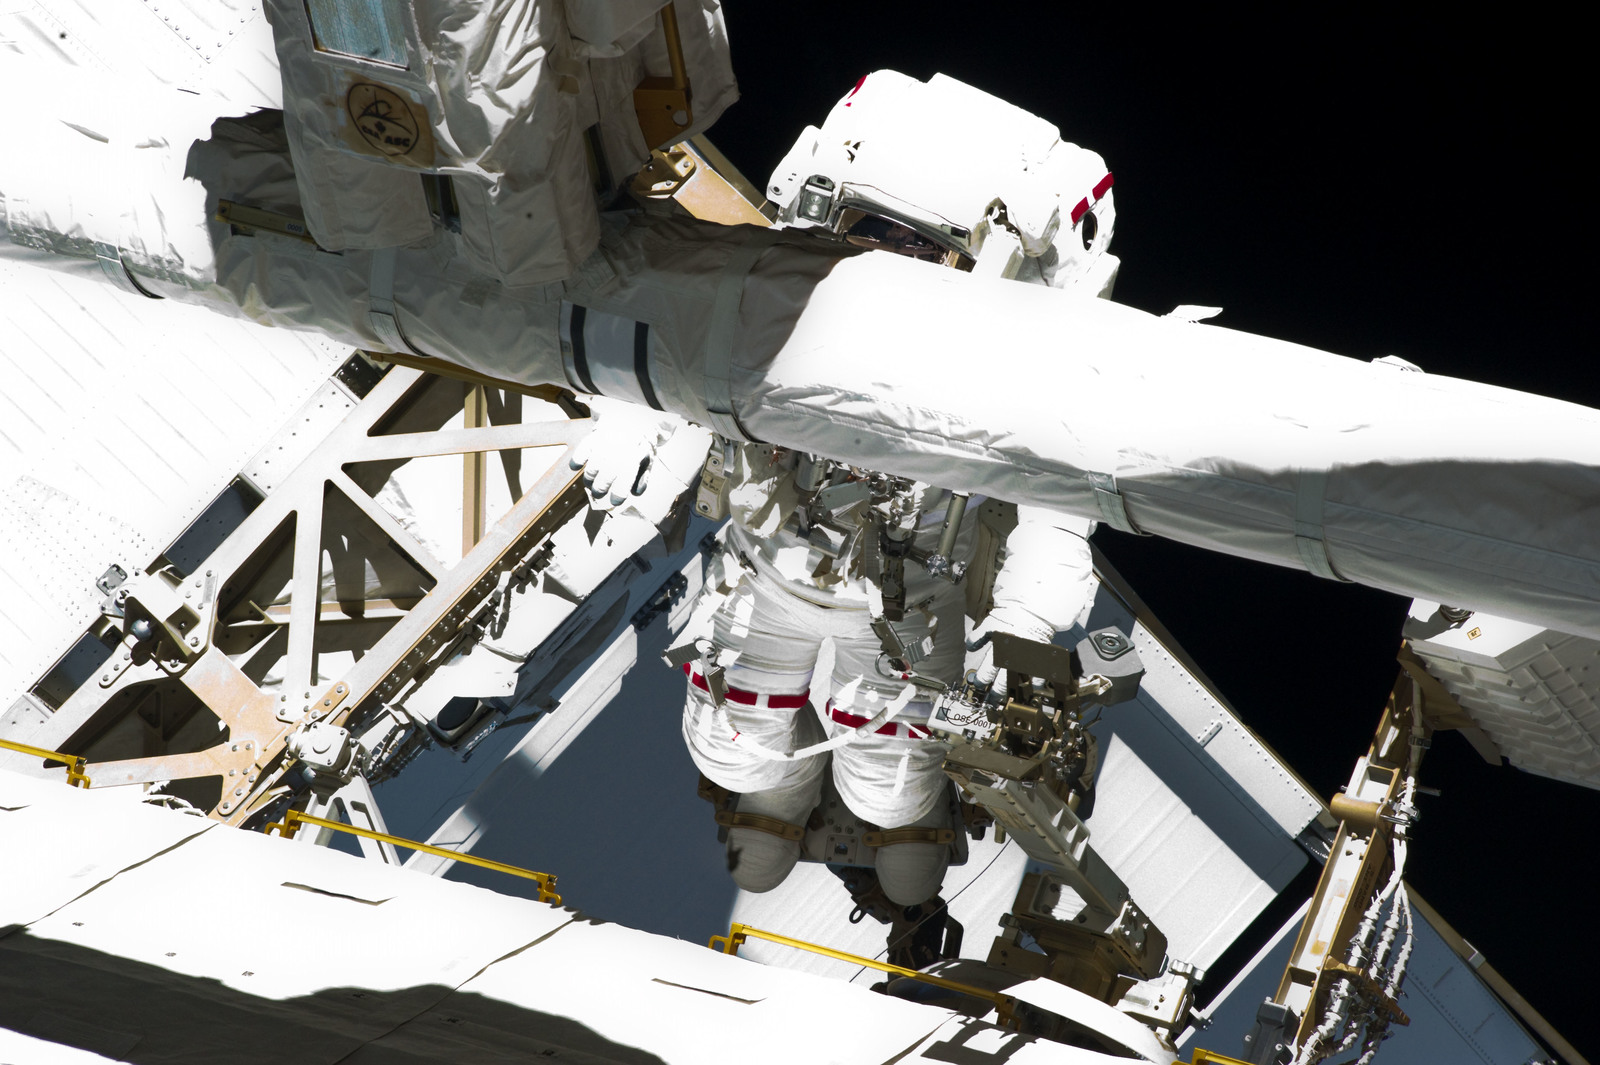 S134E009607 - STS-134 - View of STS-134 MS Chamitoff during EVA-4